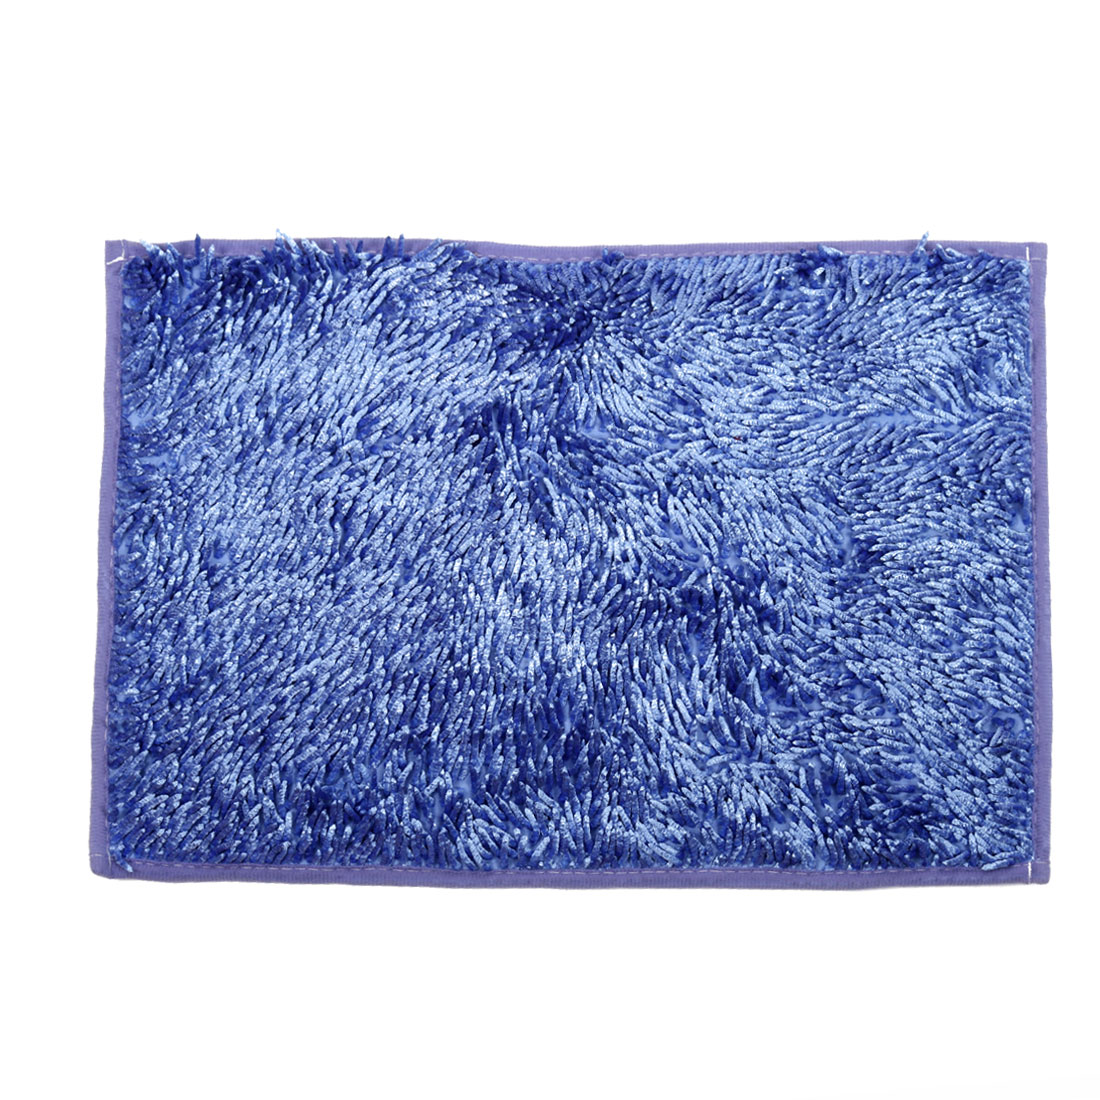 Home Bathroom Slip Resistant Absorbent Carpet Bath Rug Mat Blue 24 x 16 Inches